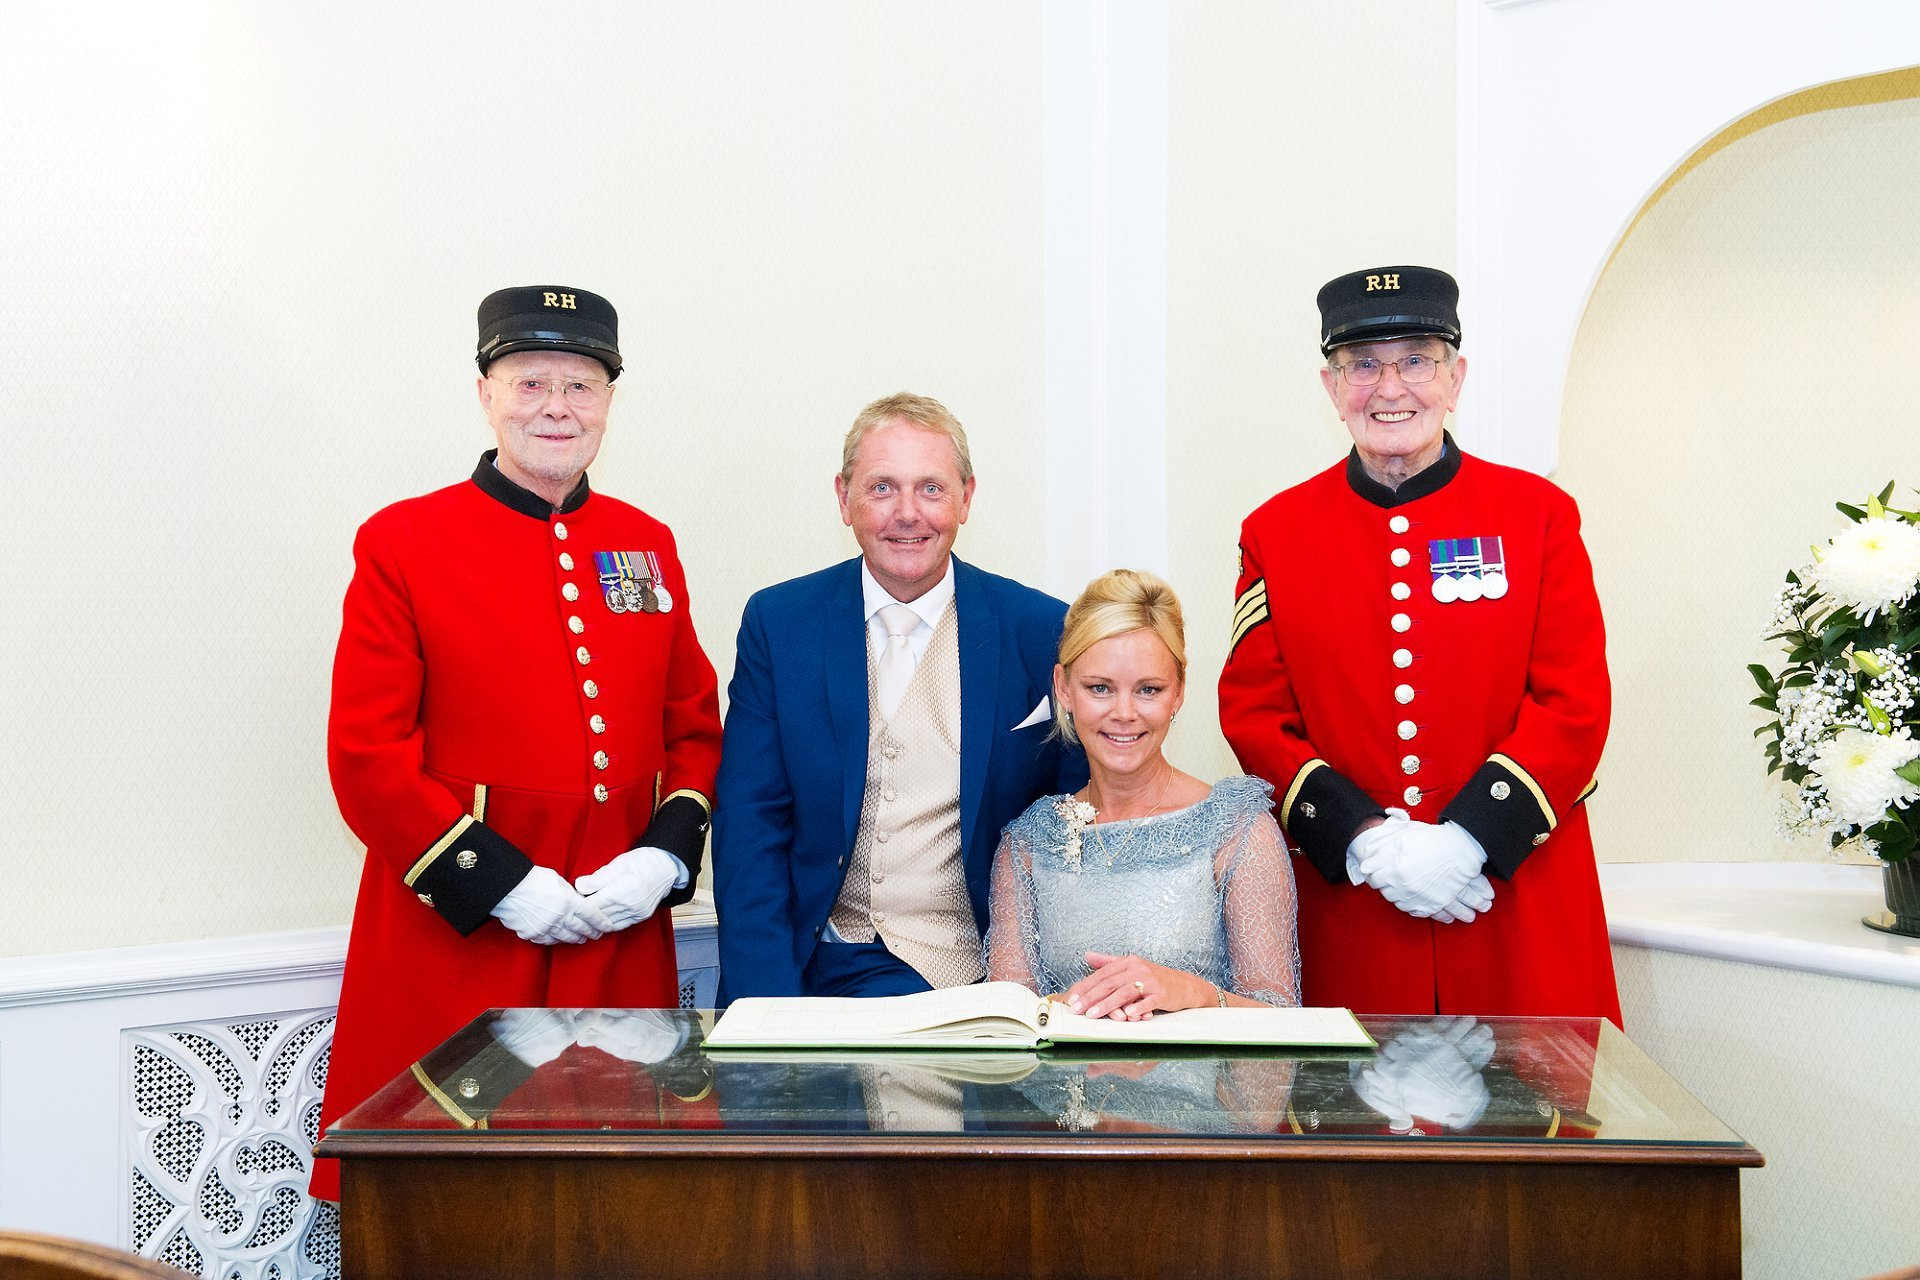 chelsea registry office wedding photographer in the rossetti room with a bride and groom and two chelsea pensioners